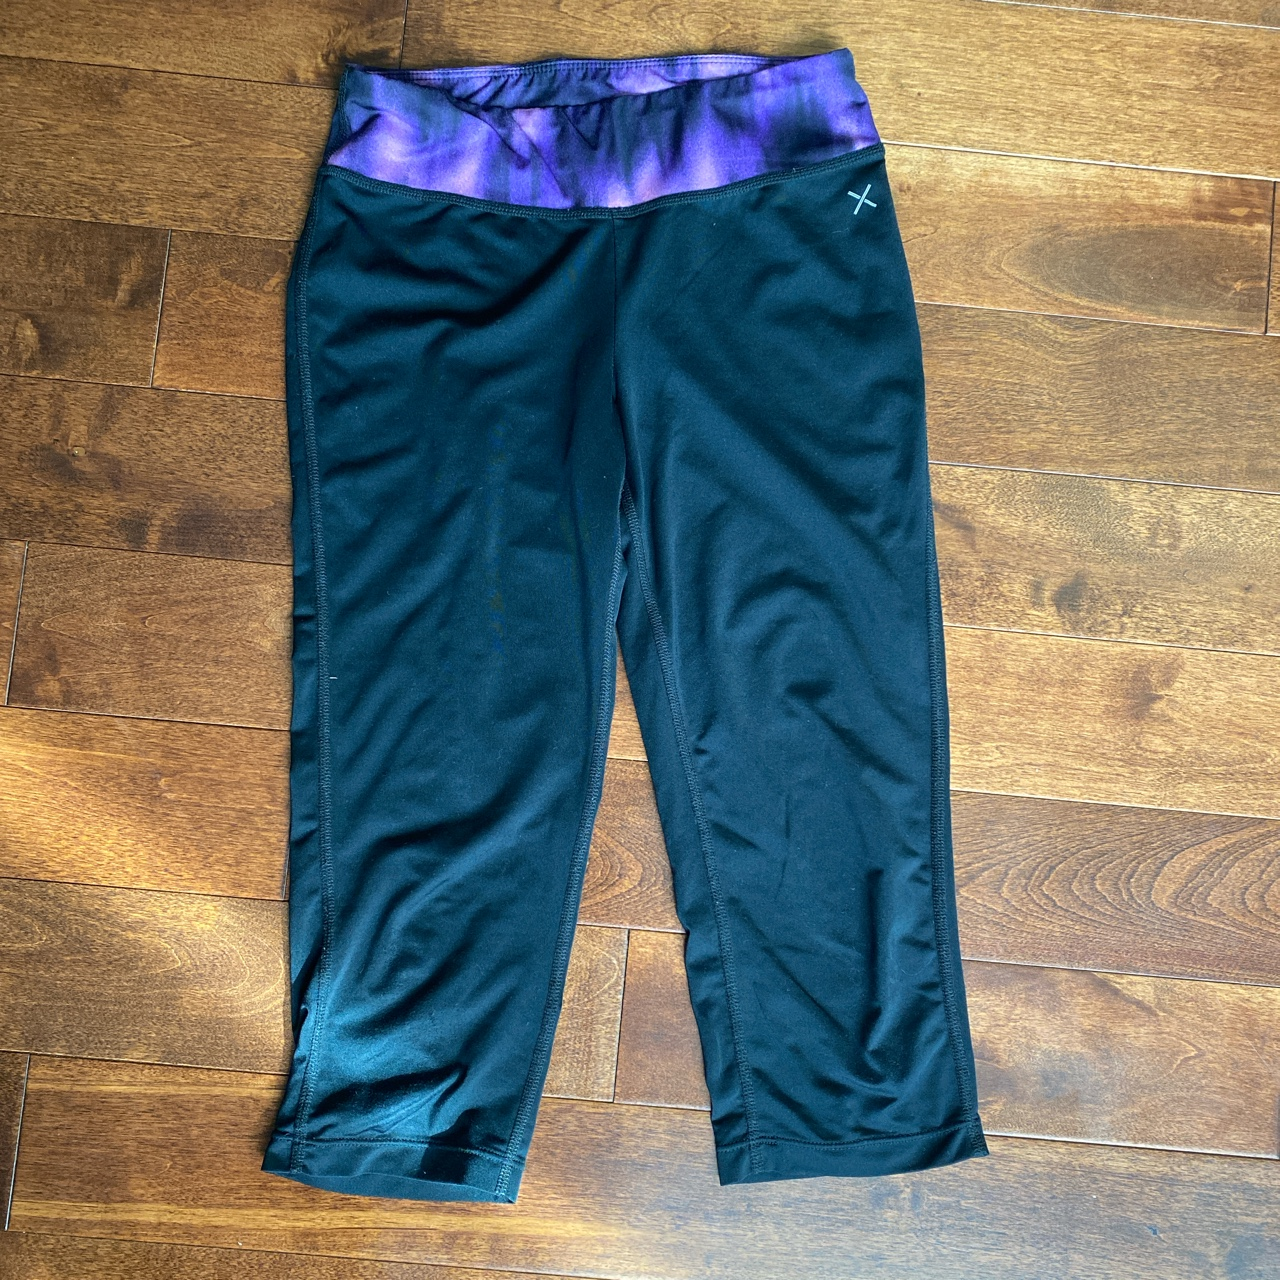 Product Image 1 - Xersion cropped leggings! They are